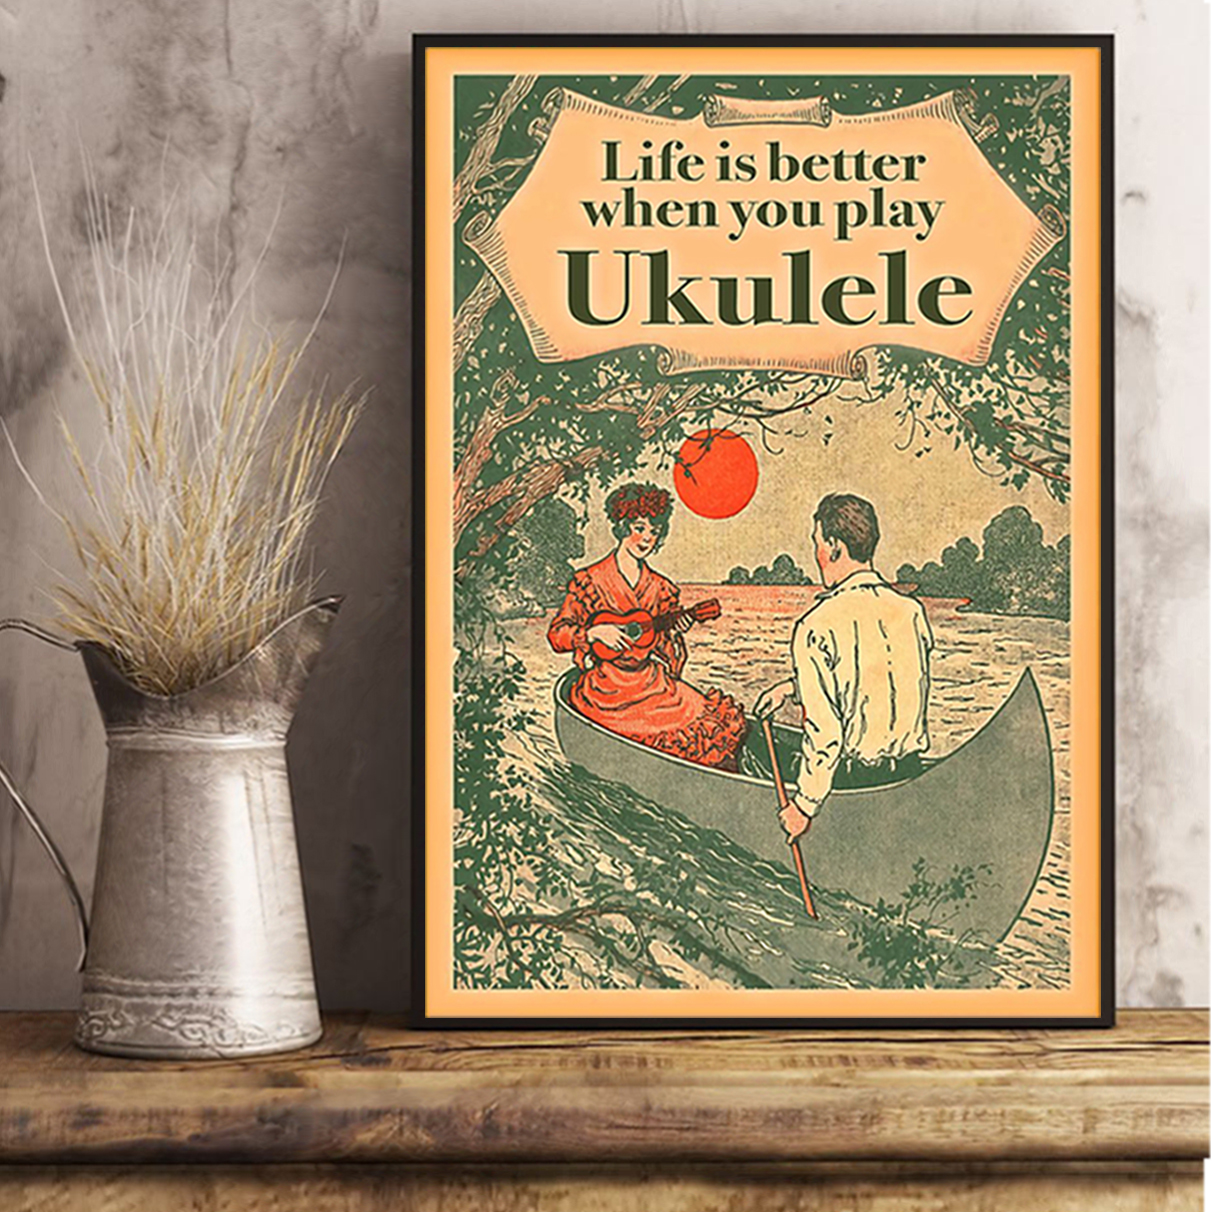 Life is better when you play ukulele poster A3